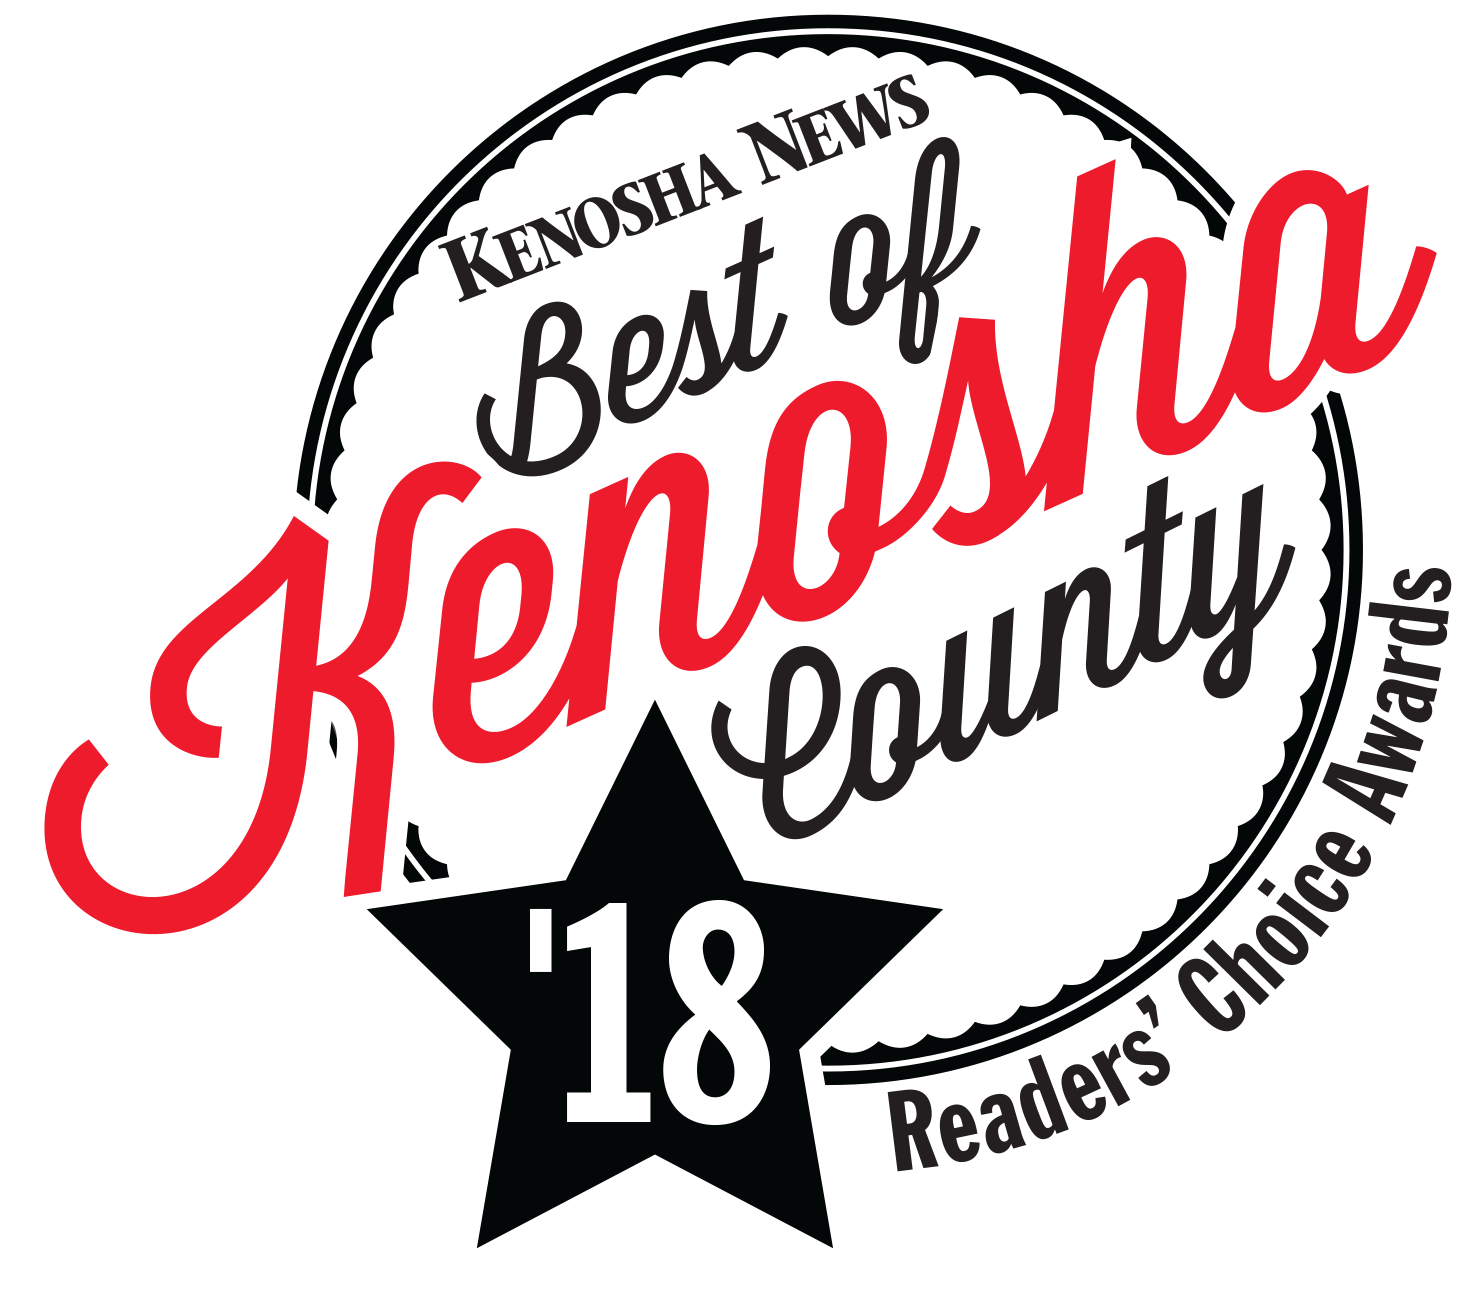 best of kenosha 2018, herberts jewelers, best jewelry shop in kenosha